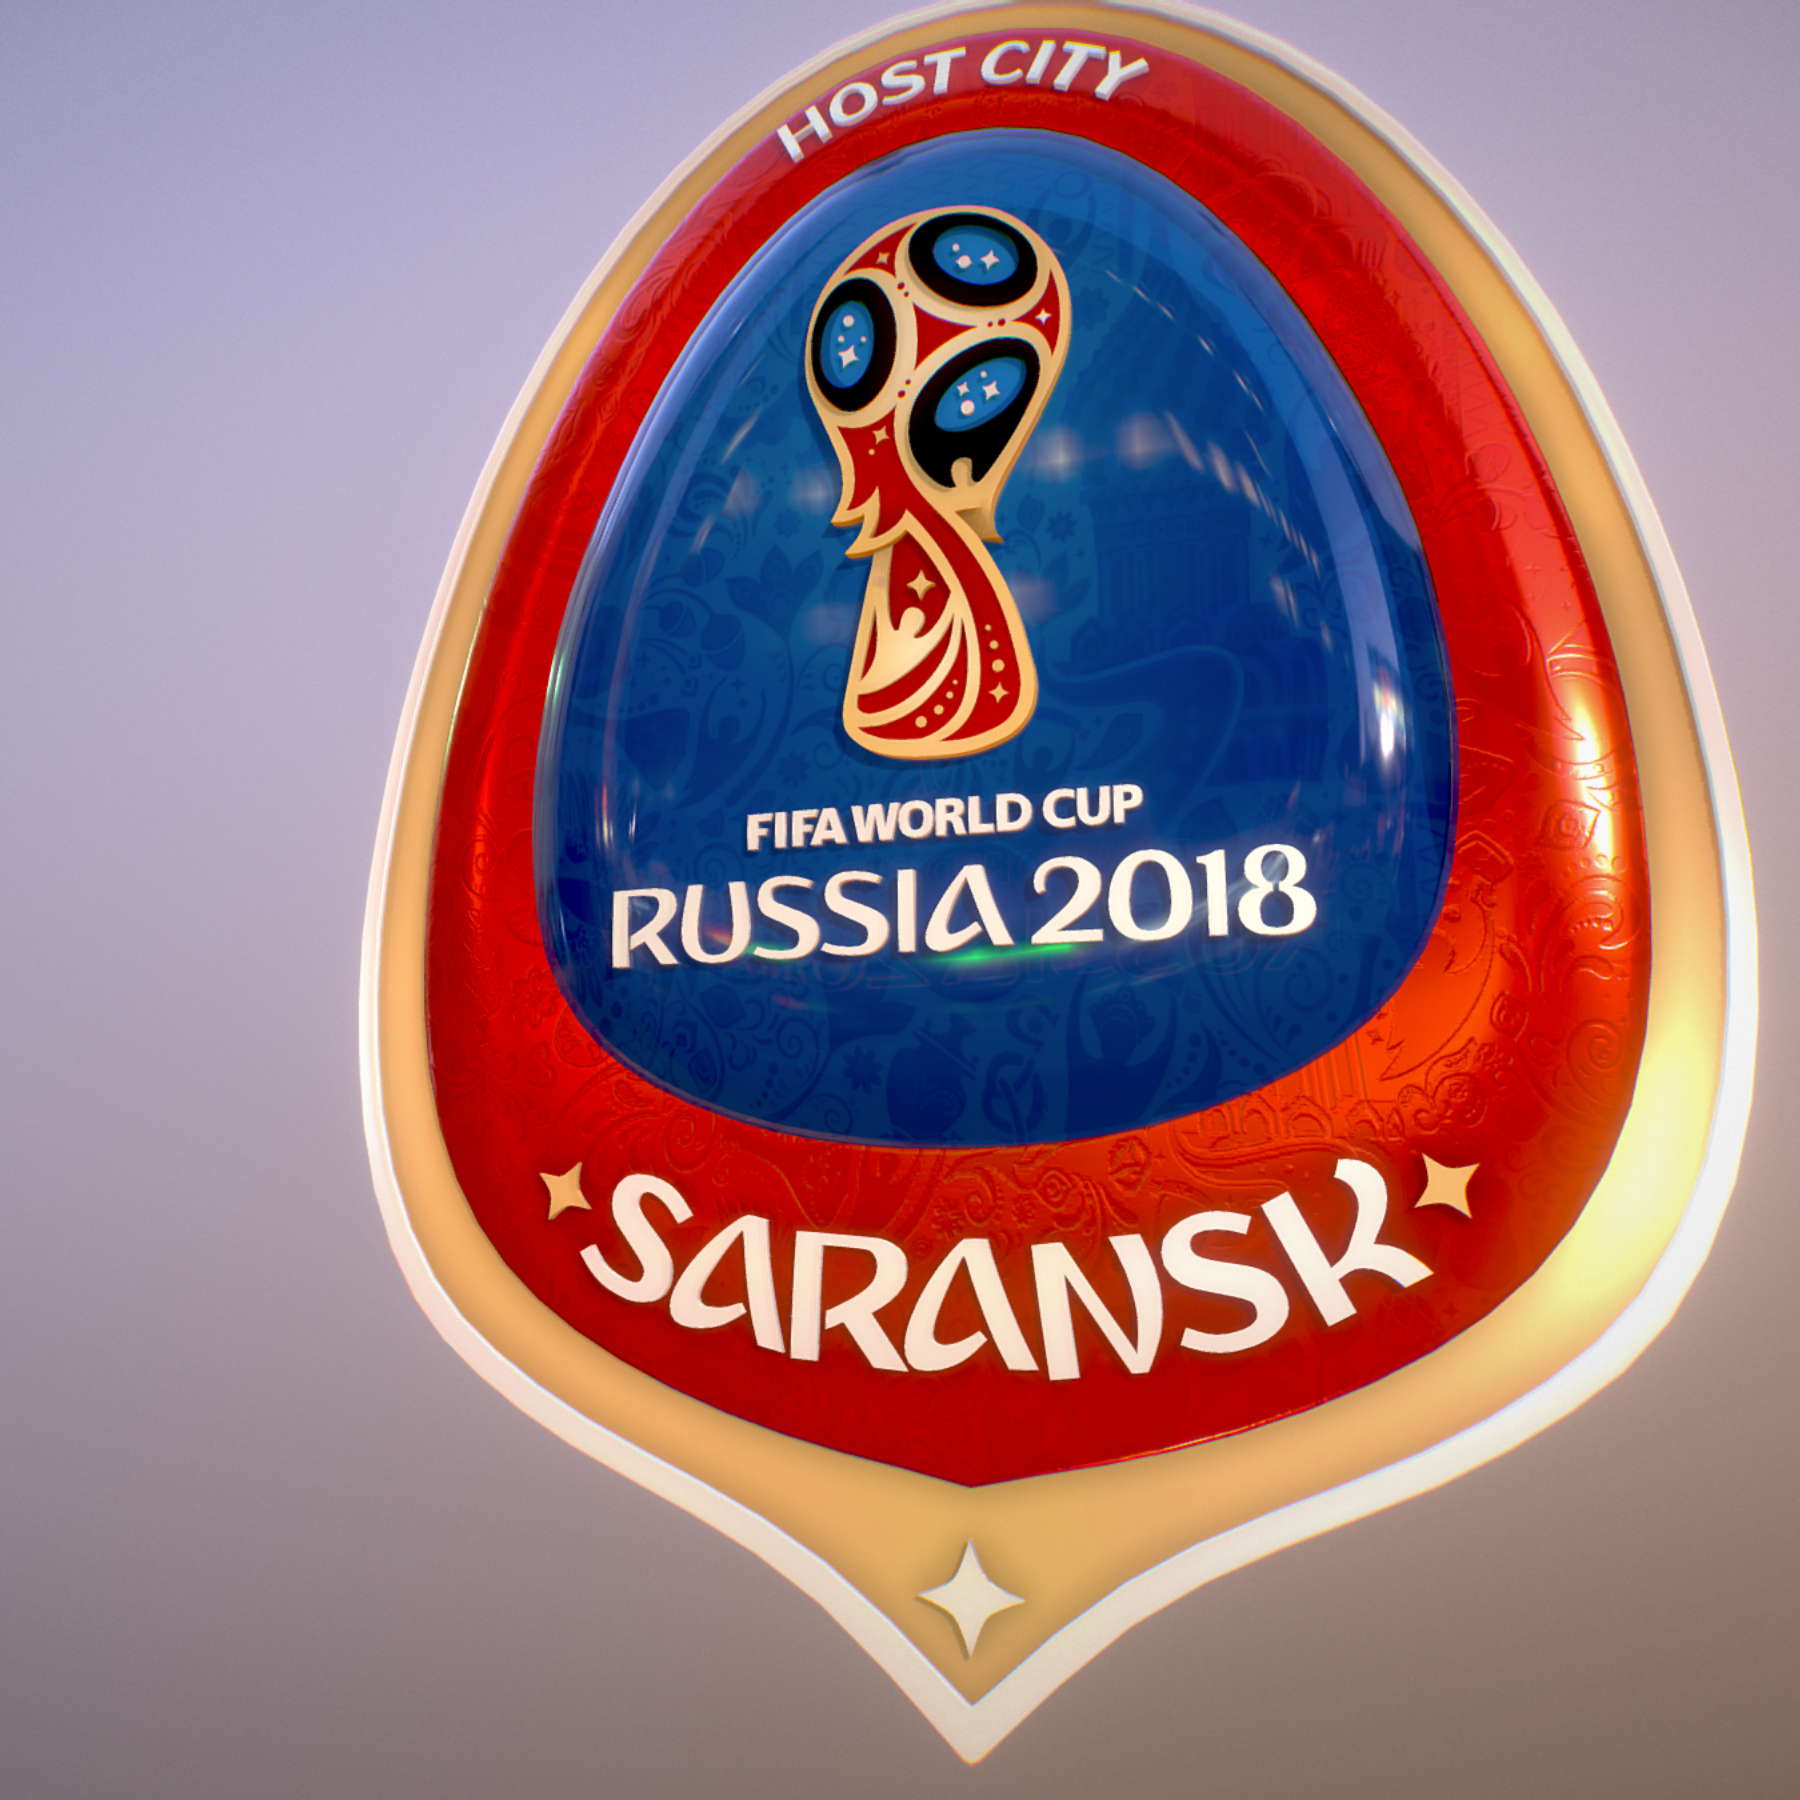 Saransk Host City World Cup Russia 2018 Symbol 3d model max 3ds max plugin fbx cob jpeg ma mb obj 271837